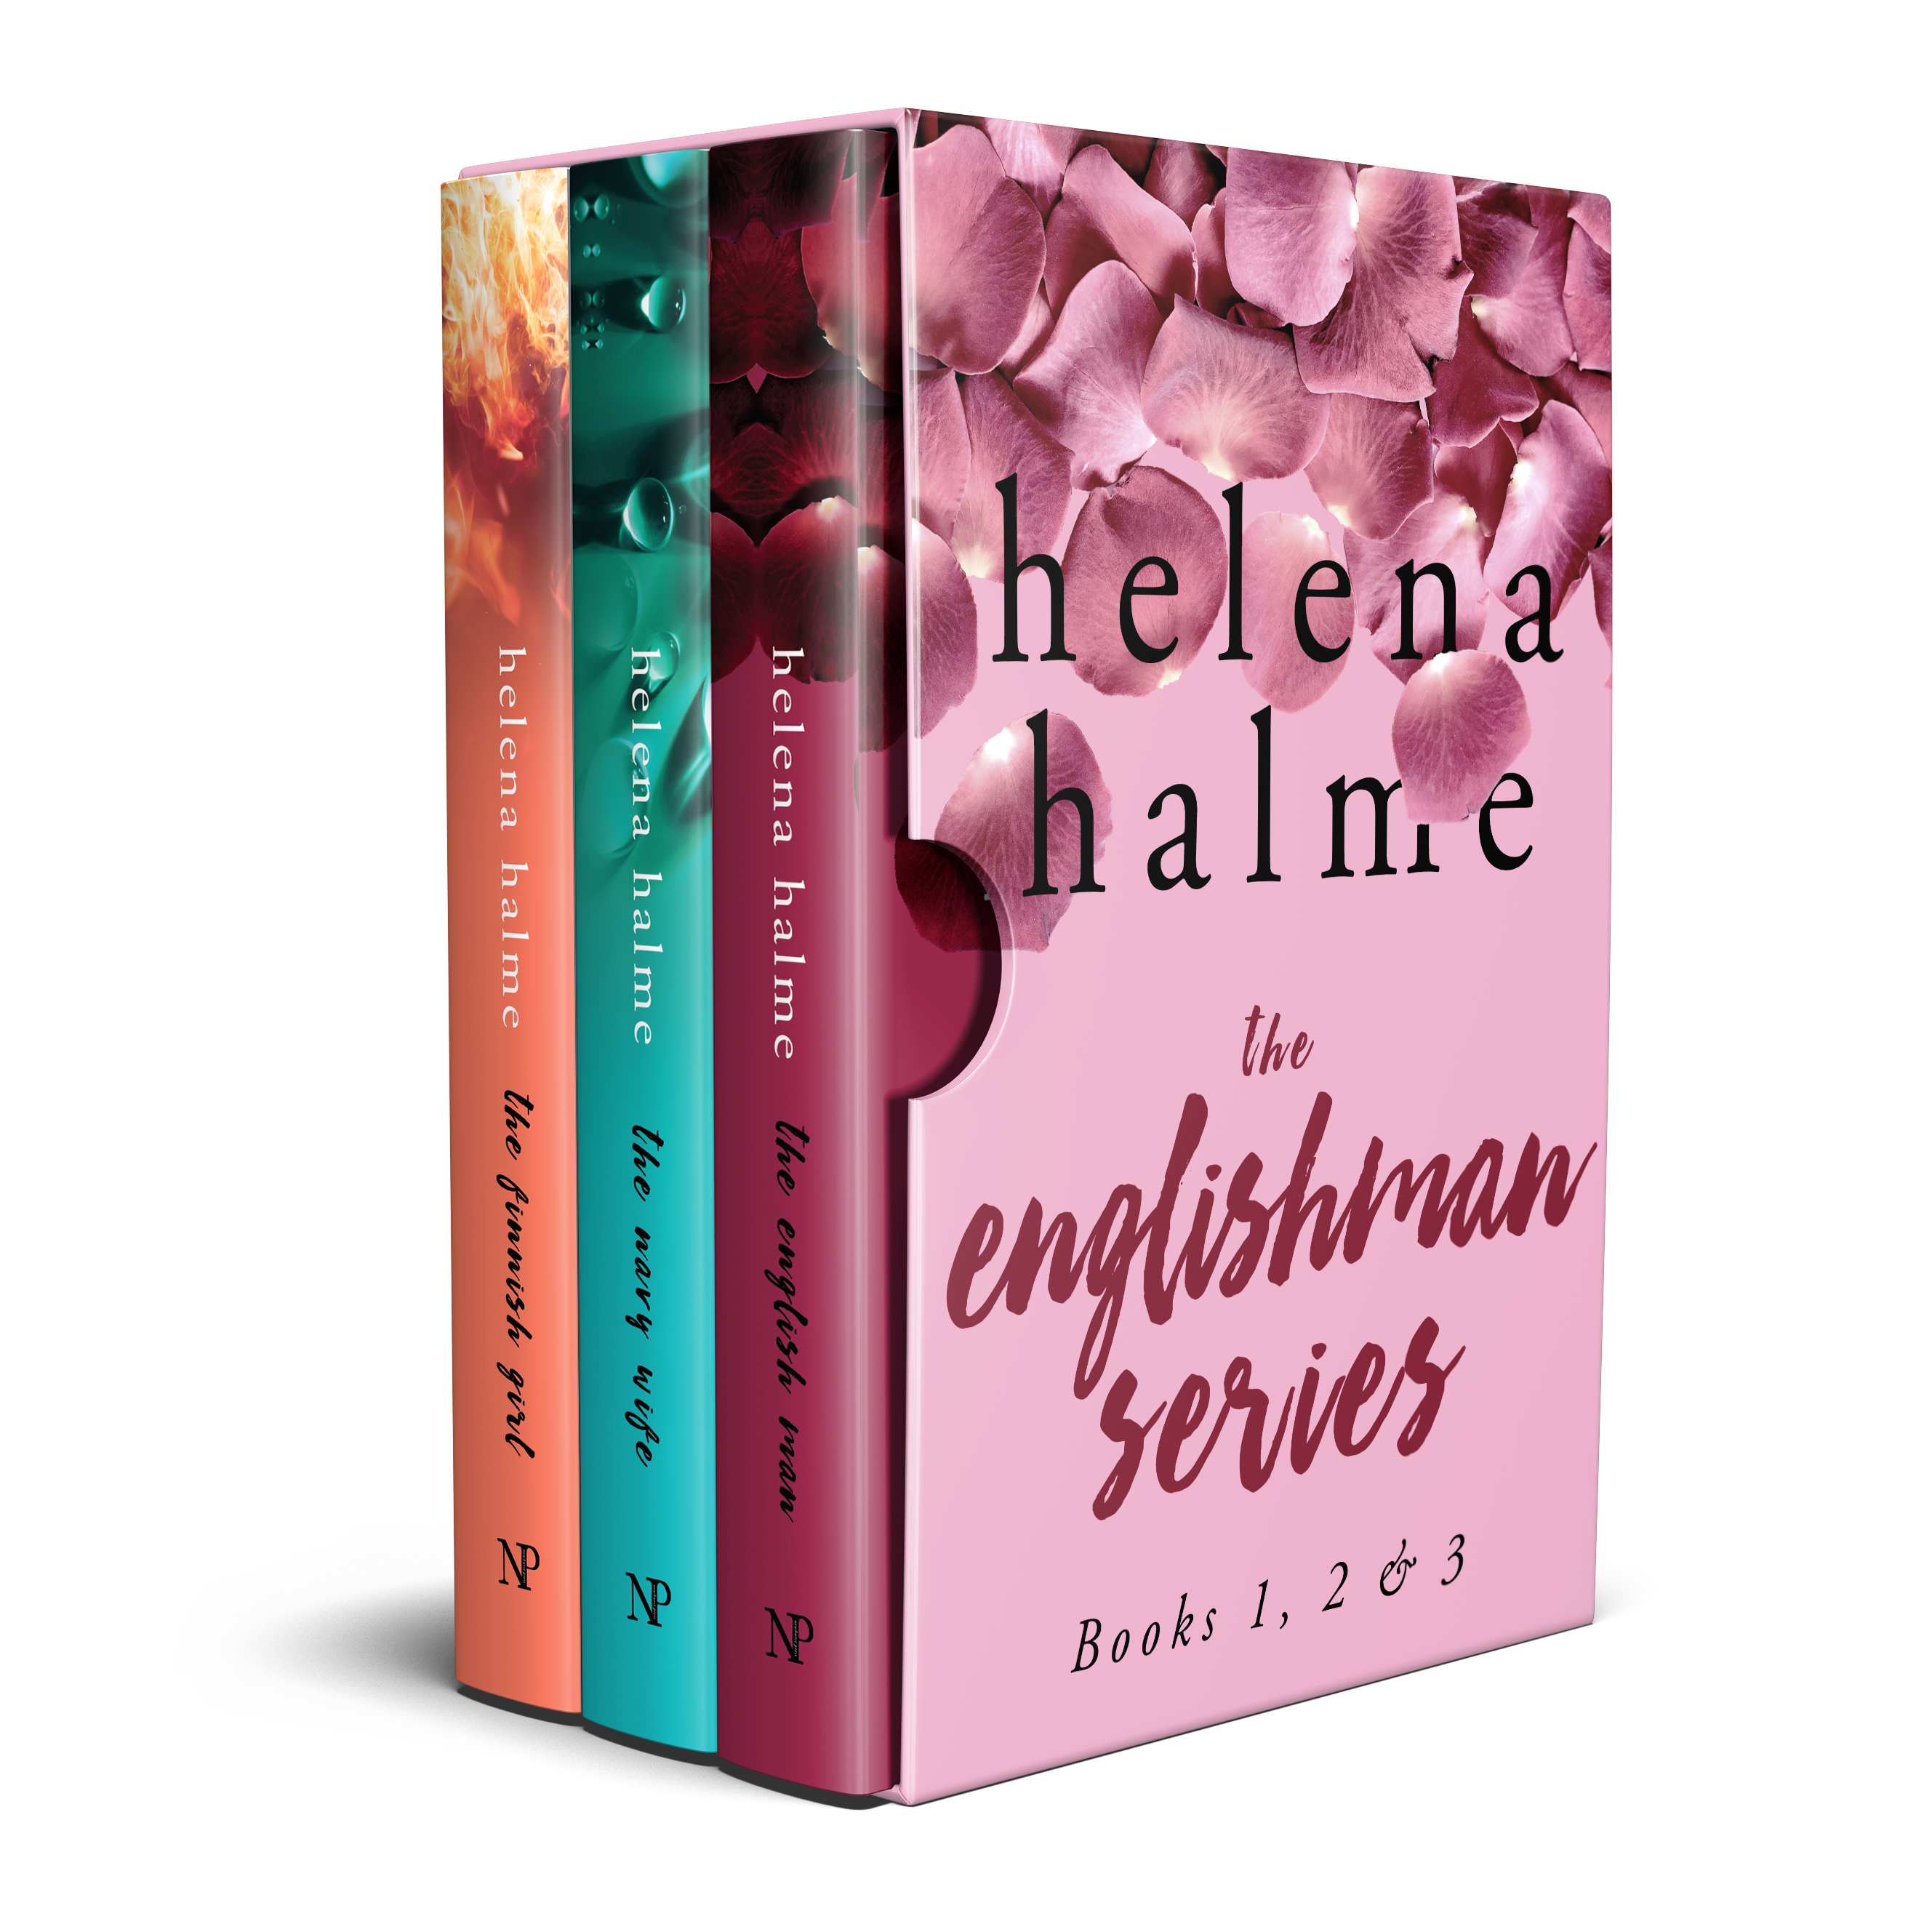 box-set-helena-halme-3d_transpbackground